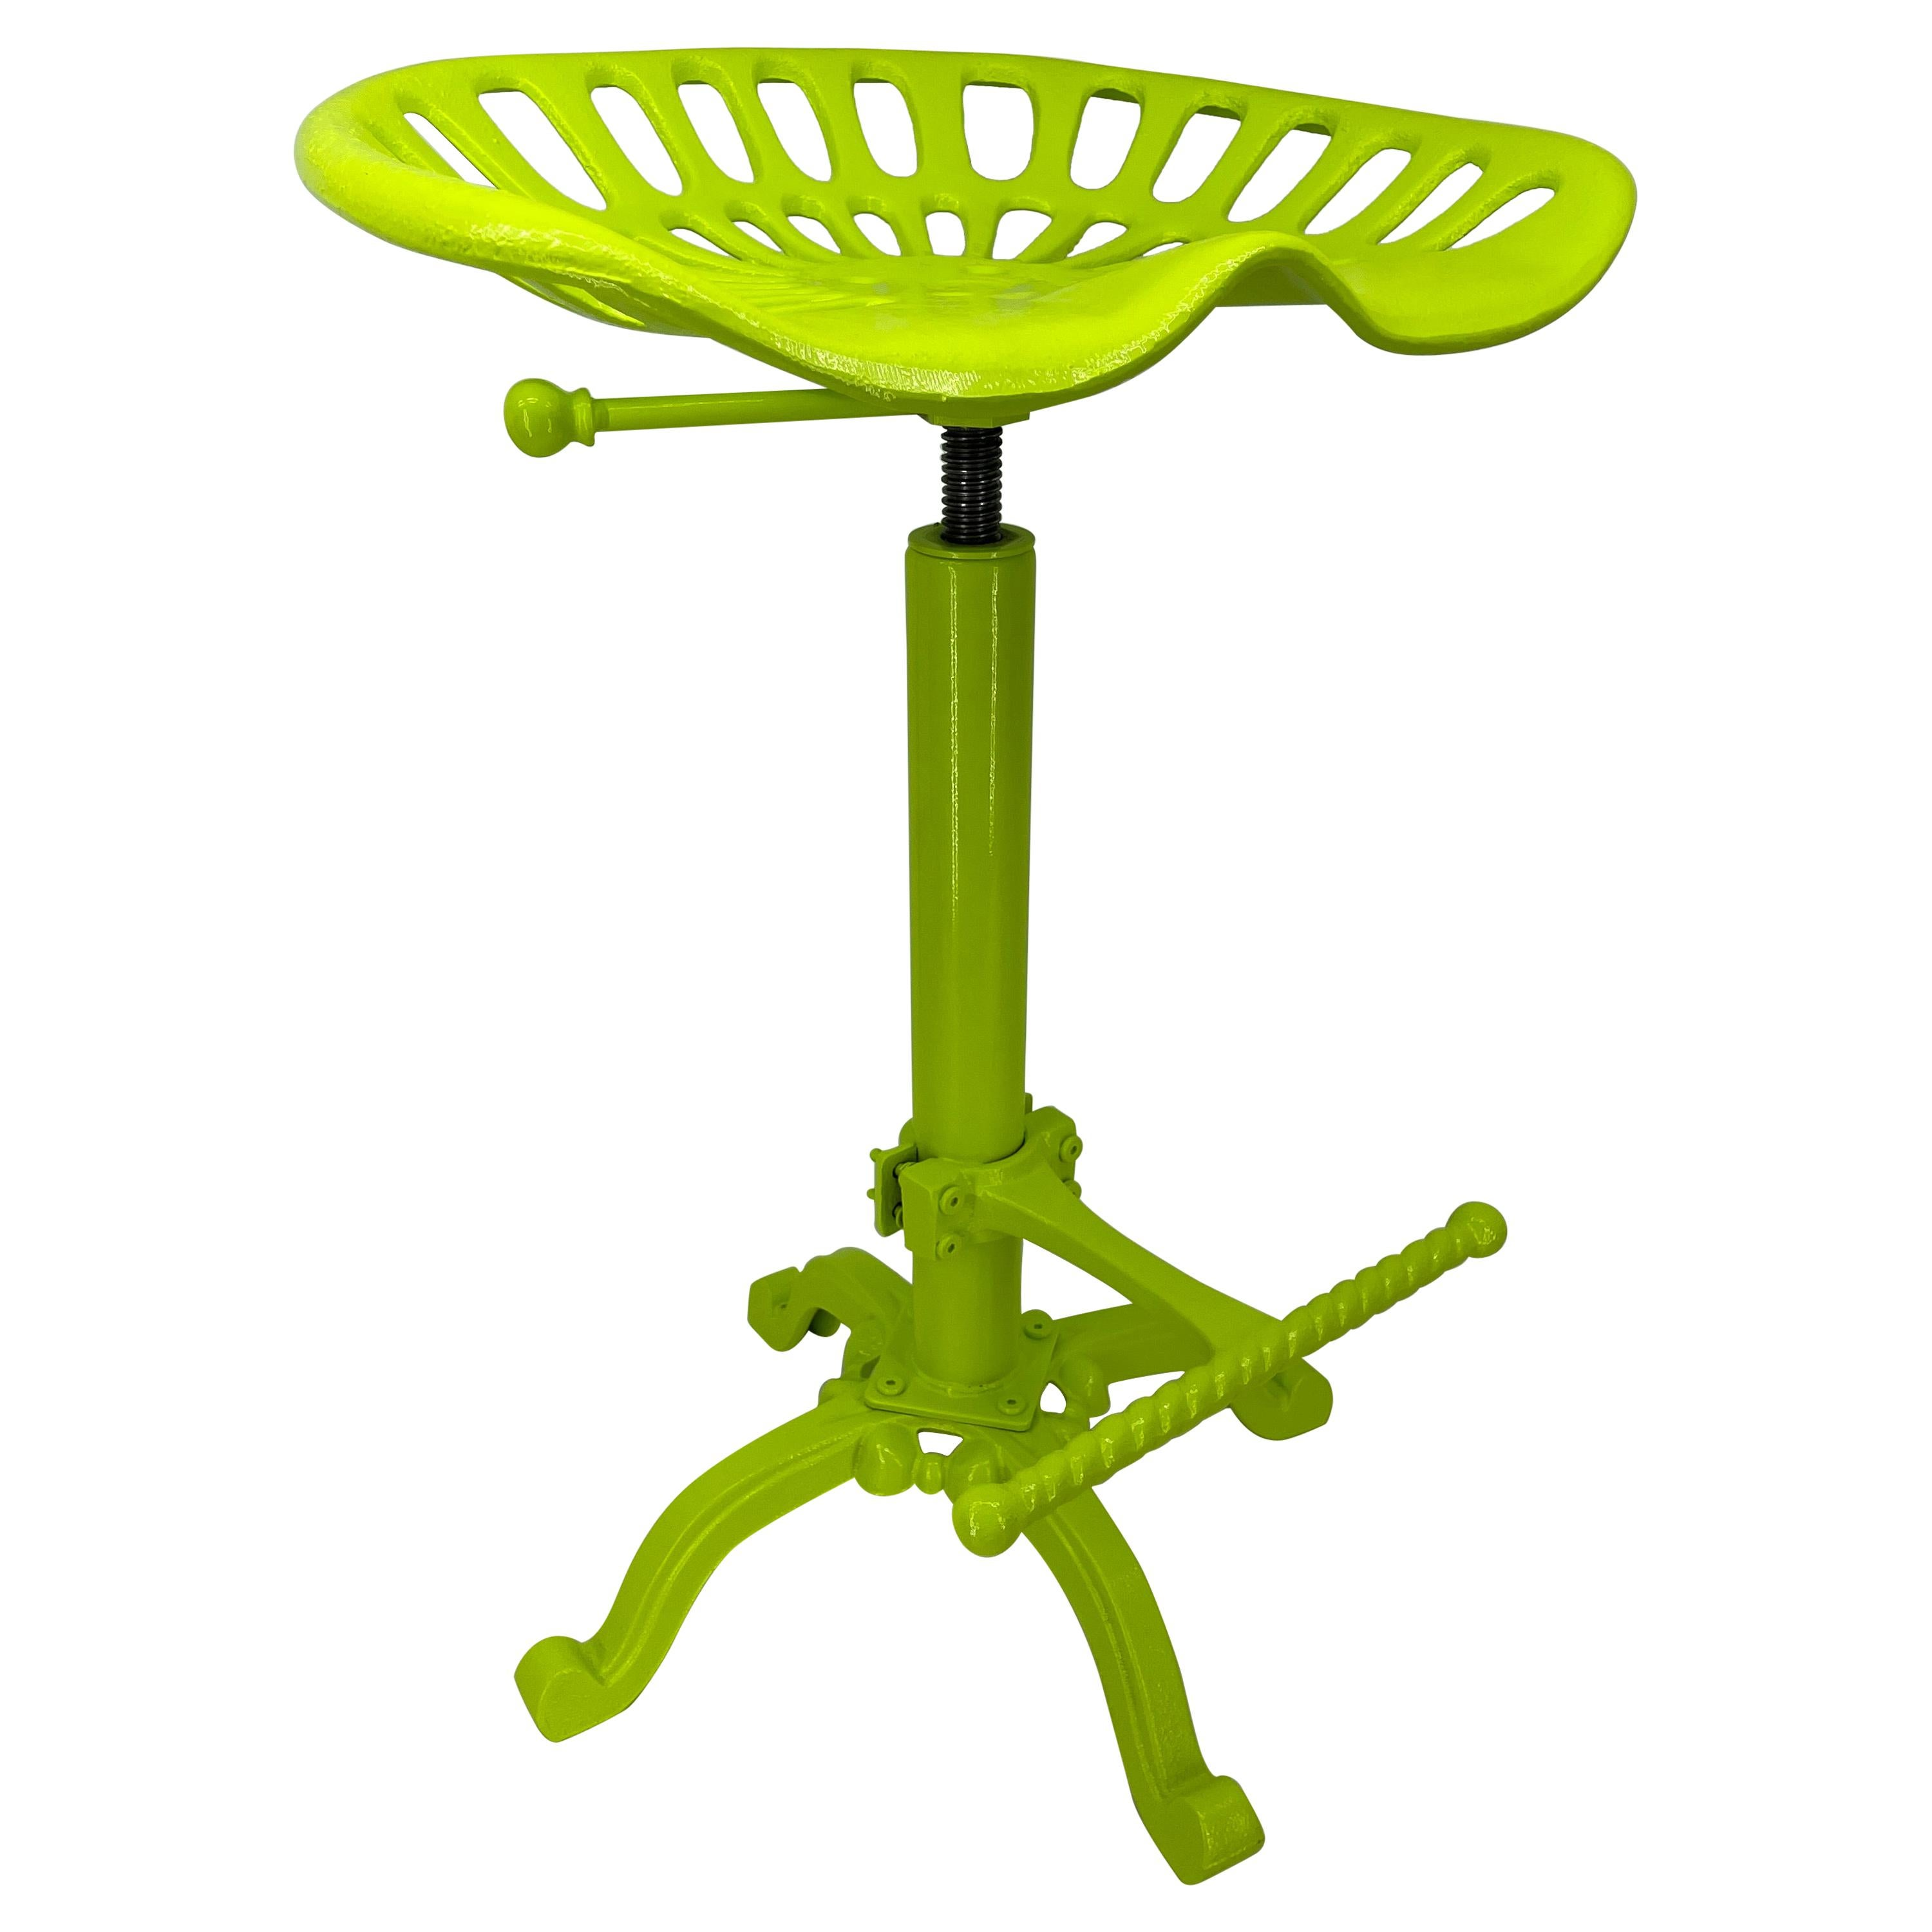 Chartreuse Painted Industrial Metal Tractor Seat Stool